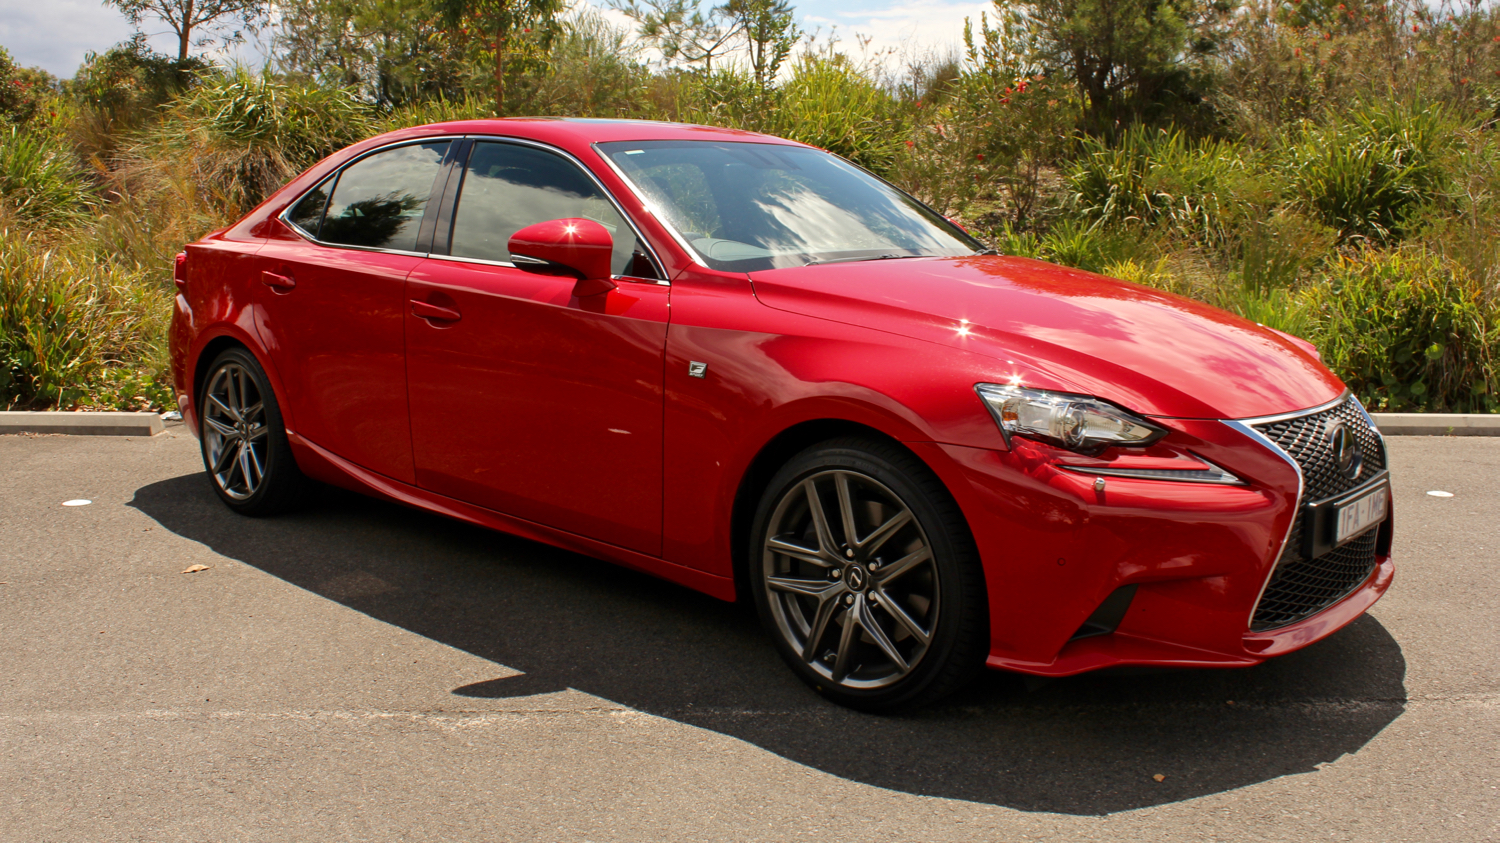 2016 lexus is200t review chasing cars. Black Bedroom Furniture Sets. Home Design Ideas